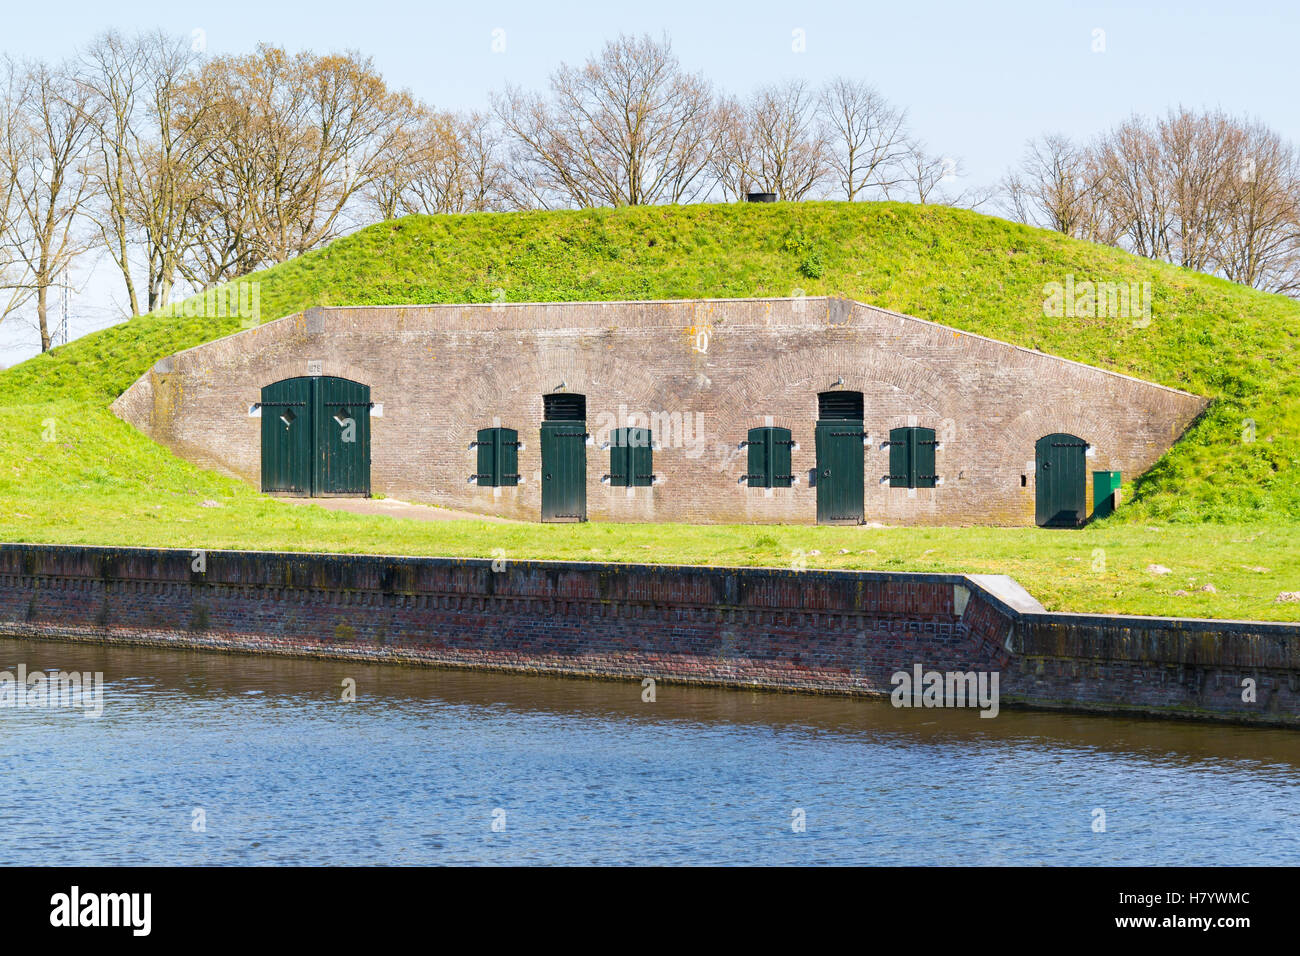 Barrack on ravelin Oranje-Promers in old fortified town of Naarden, North Holland, Netherlands - Stock Image